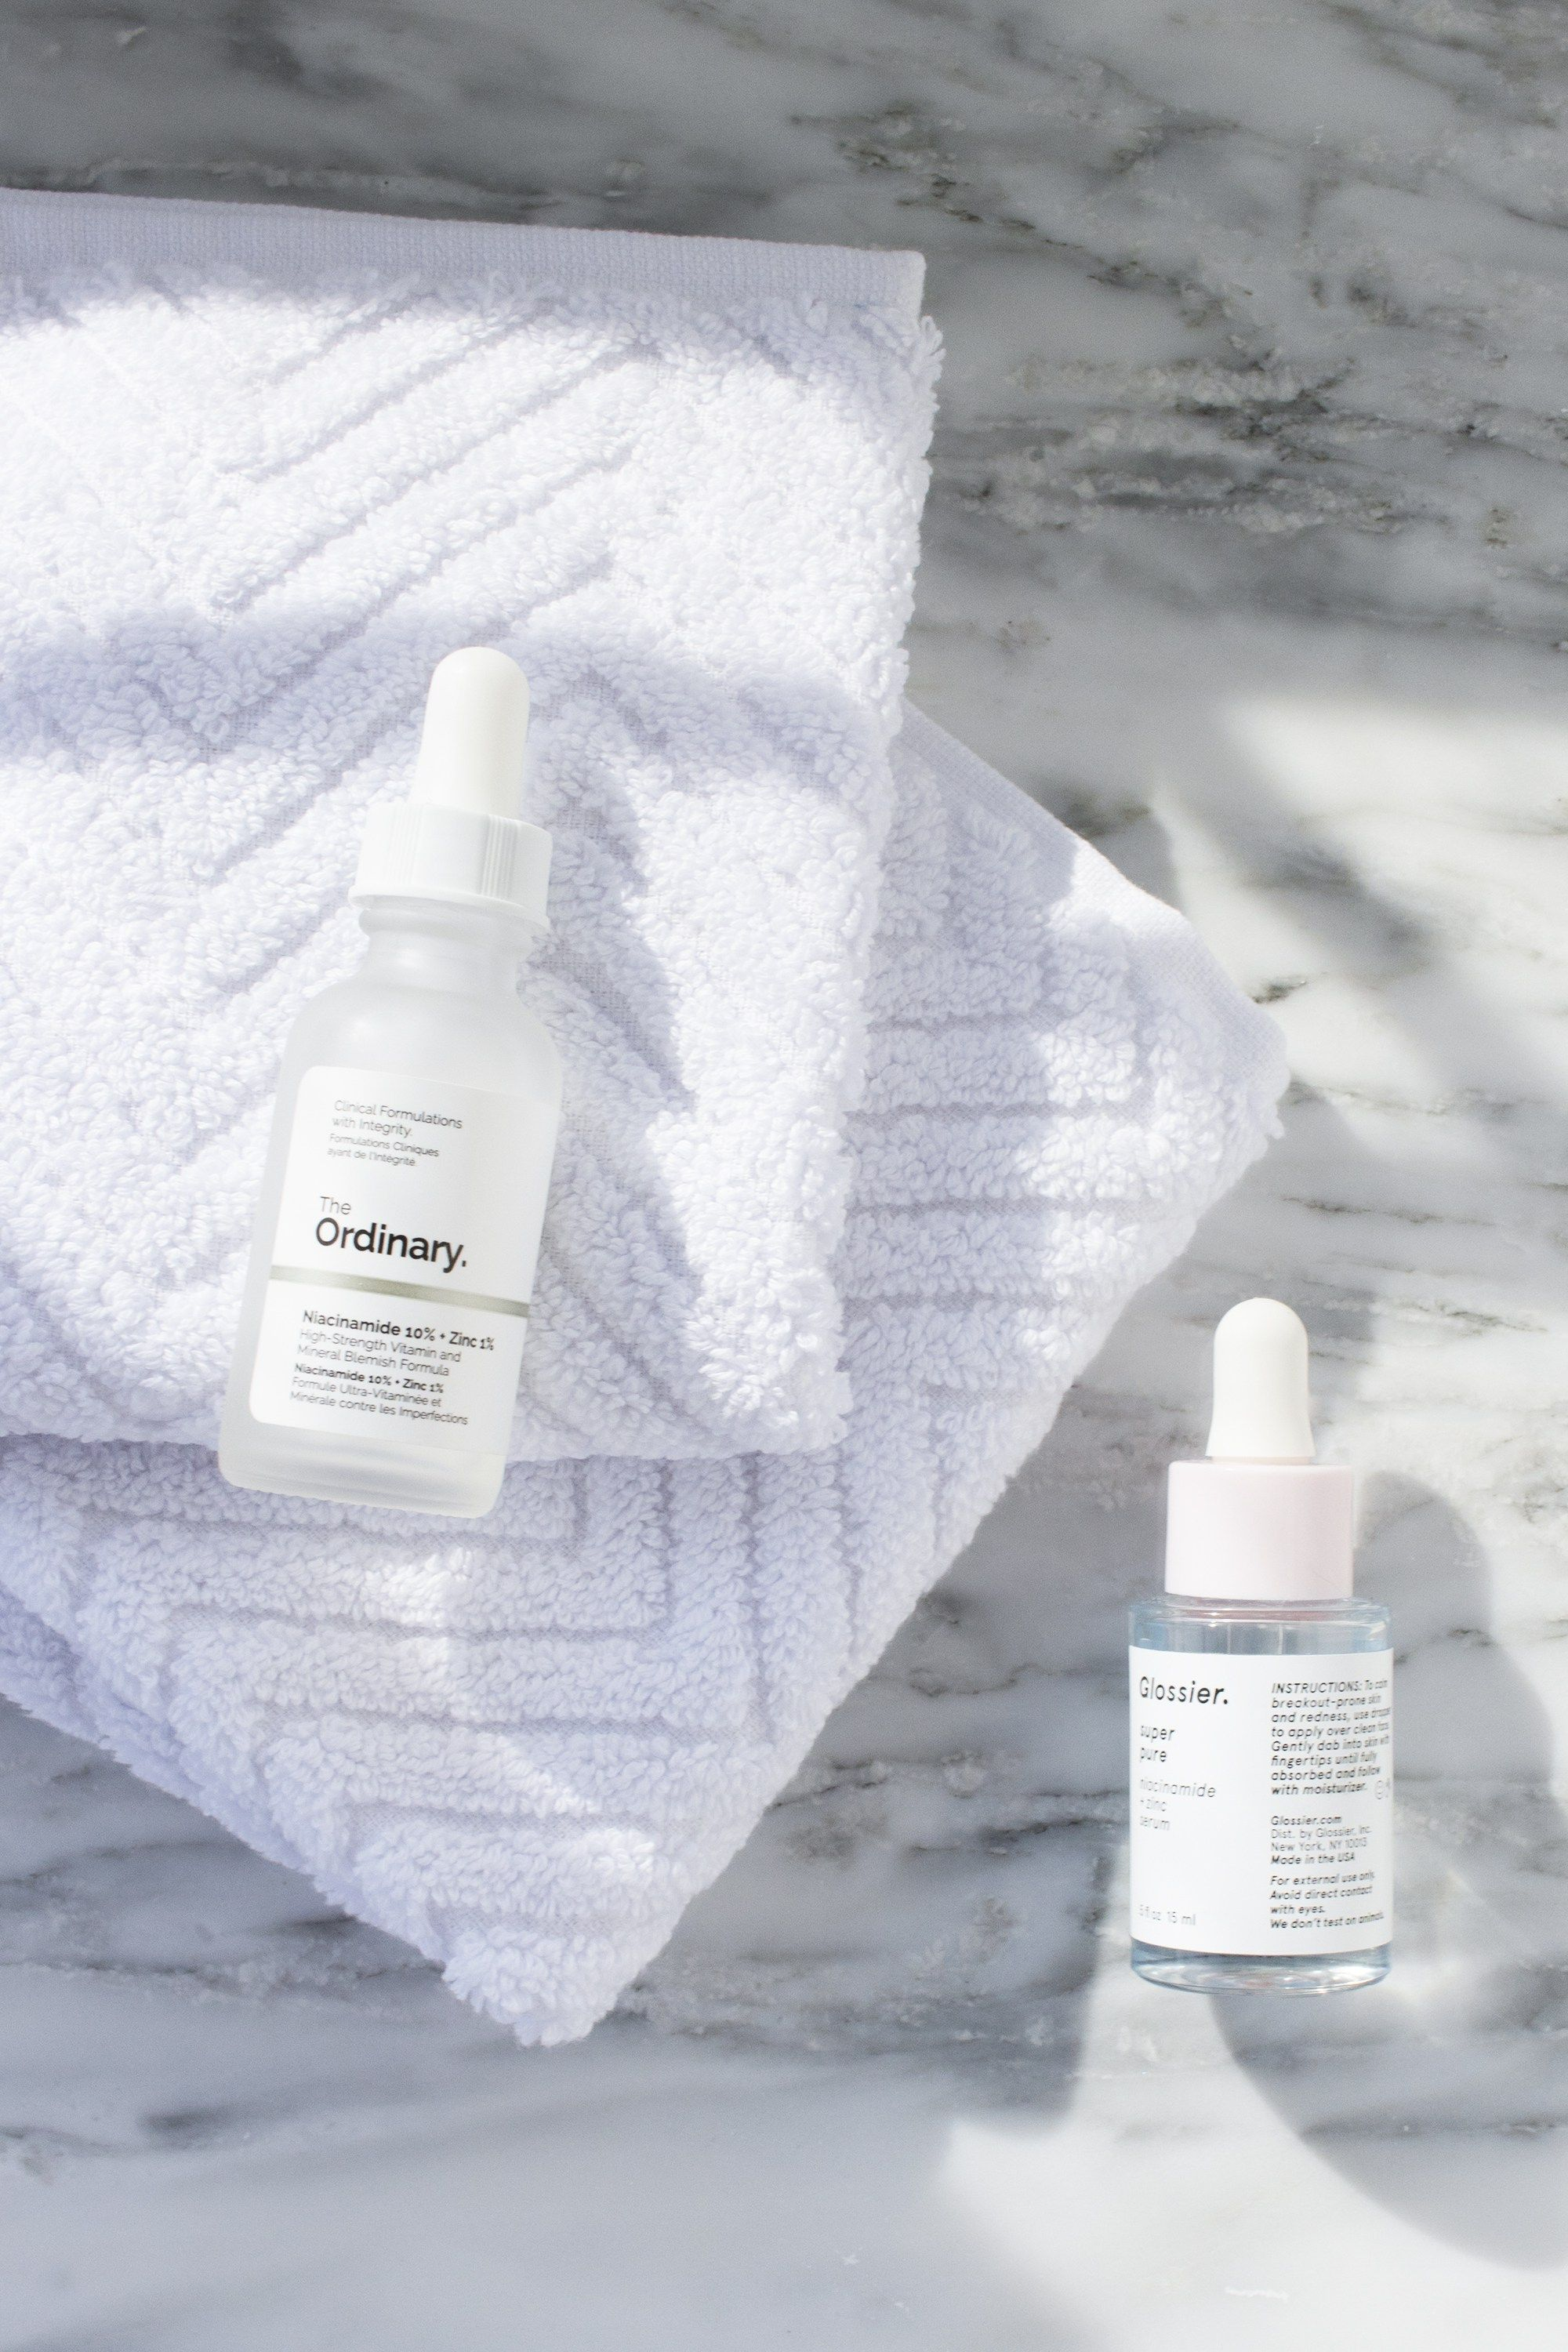 Glossier Super Pure Vs The Ordinary Niacinamide Zinc Serum Caked To The Nines Glossier Super Pure The Ordinary Niacinamide Super Pure